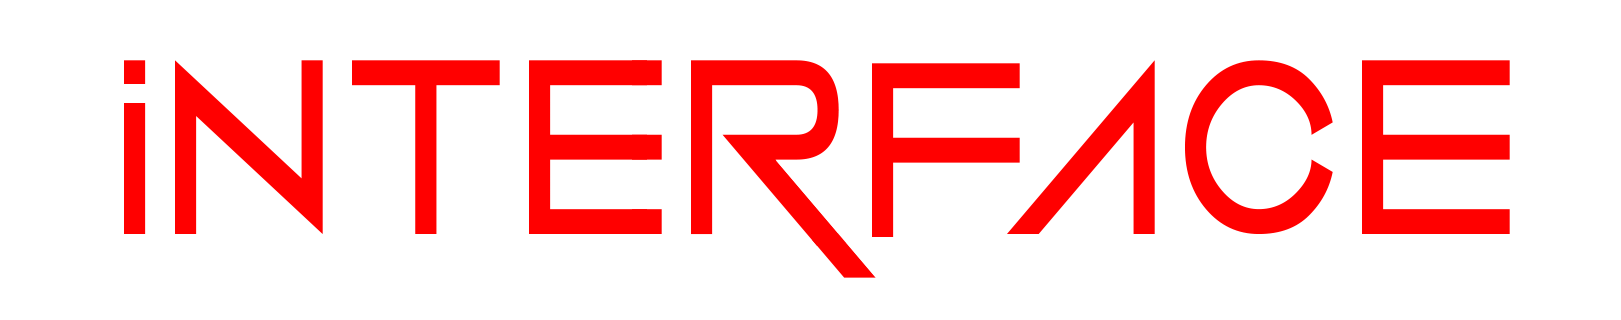 iNTERFACE-logo_web